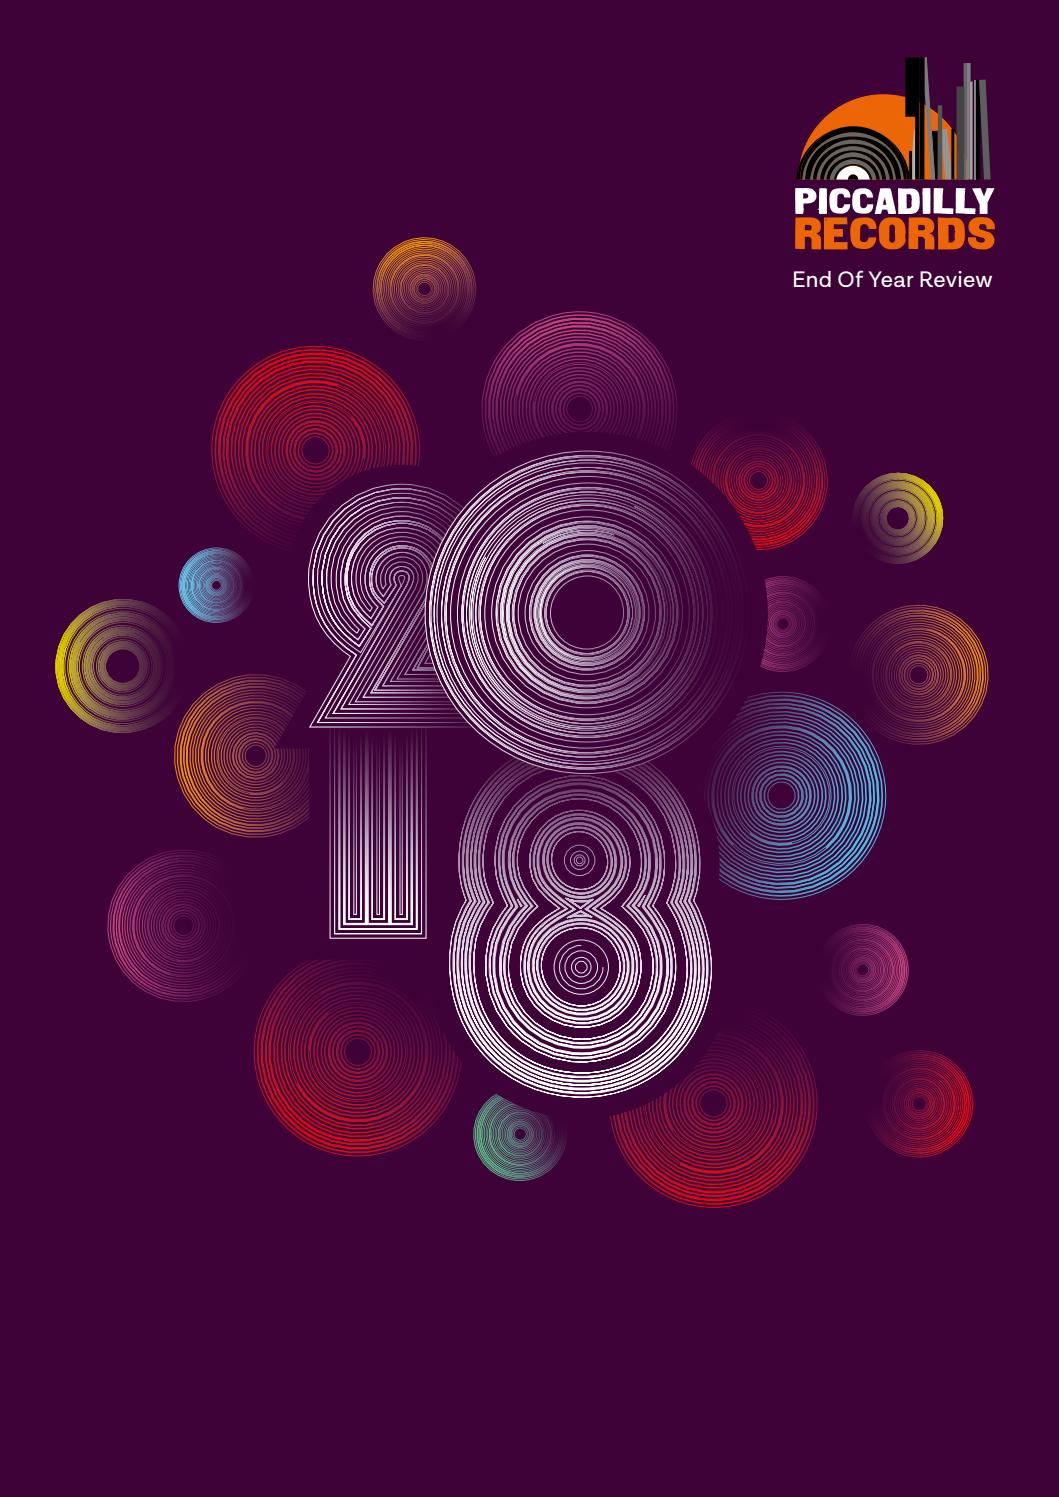 Piccadilly Records End Of Year Review 2018 by Piccadilly Records - issuu 00cc1be2244